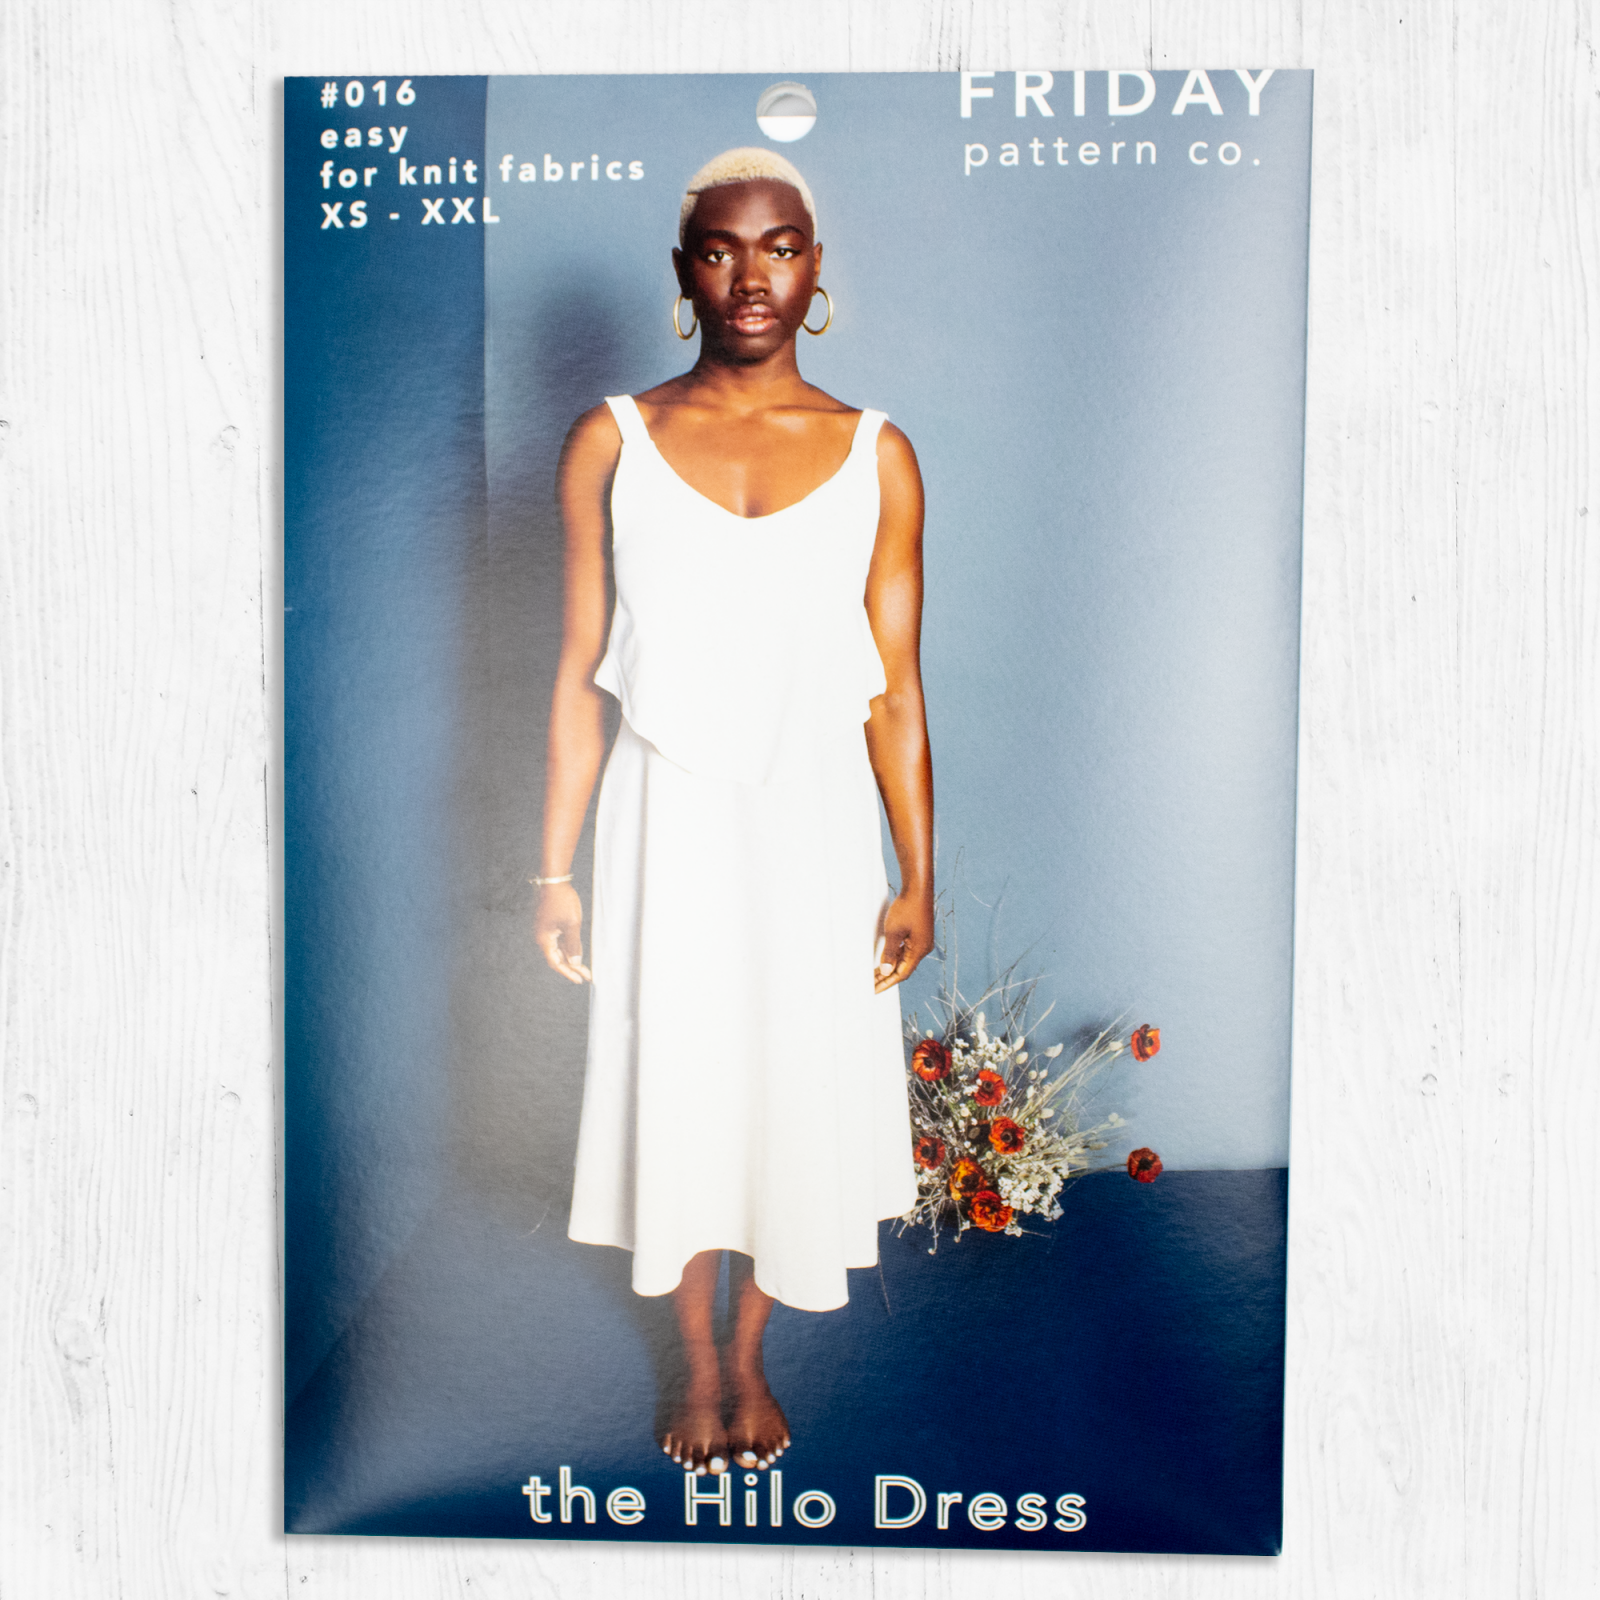 Friday Pattern Co. - The Hilo Dress